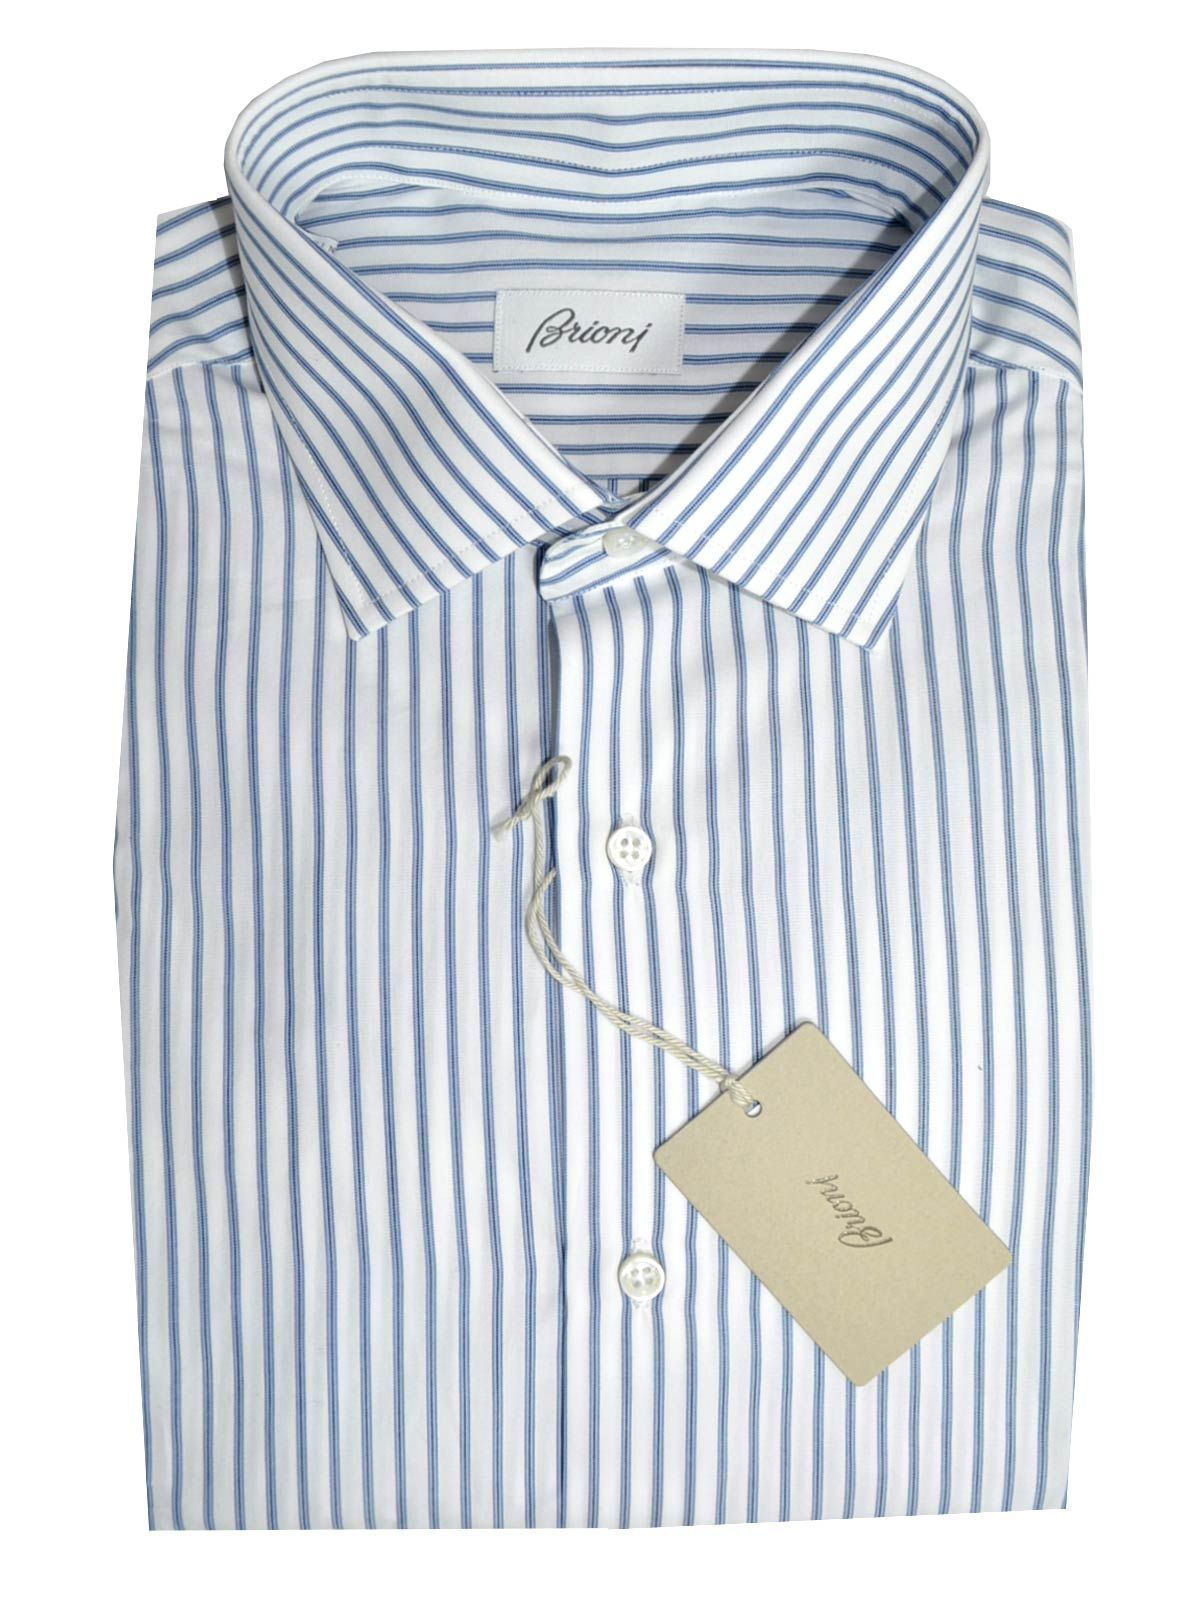 5ac1350f985ca4 Brioni Dress Shirt White Navy Blue Stripes Slim Fit 40 - 15 3/4 SALE ...